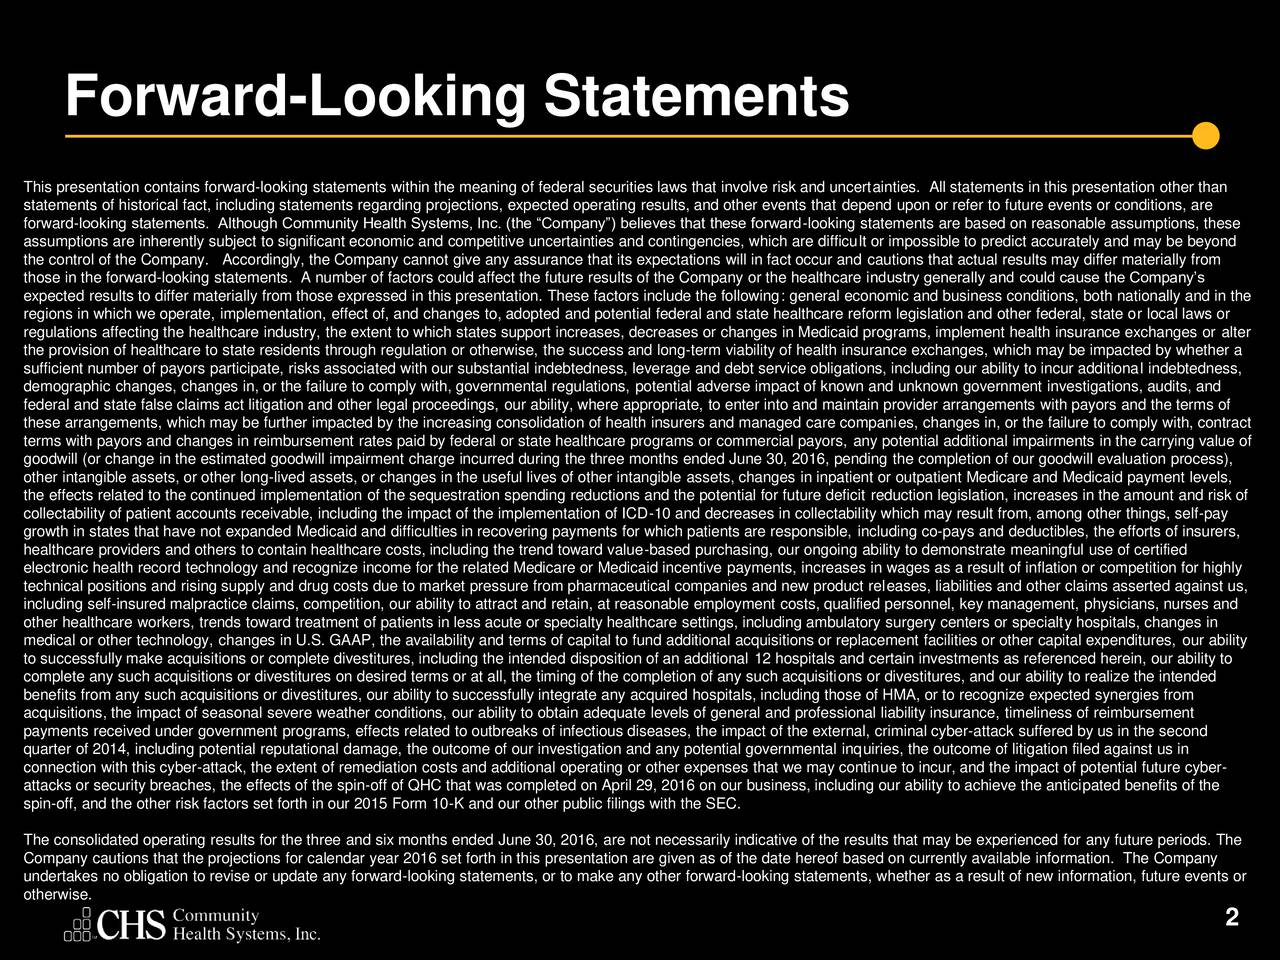 This presentation contains forward-looking statements within the meaning of federal securities laws that involve risk and uncertainties. All statements in this presentation other than statements of historical fact, including statements regarding projections, expected operating results, and other events that depend upon or refer to future events or conditions, are forward-looking statements. Although Community Health Systems, Inc. (the Company) believes that these forward-looking statements are based on reasonable assumptions, these assumptions are inherently subject to significant economic and competitive uncertainties and contingencies, which are difficult or impossible to predict accurately and may be beyond the control of the Company. Accordingly, the Company cannot give any assurance that its expectations will in fact occur and cautions that actual results may differ materially from those in the forward-looking statements. A number of factors could affect the future results of the Company or the healthcare industry generally and could cause the Companys expected results to differ materially from those expressed in this presentation. These factors include the following: general economic and business conditions, both nationally and in the regions in which we operate, implementation, effect of, and changes to, adopted and potential federal and state healthcare reform legislation and other federal, state or local laws or regulations affecting the healthcare industry, the extent to which states support increases, decreases or changes in Medicaid programs, implement health insurance exchanges or alter the provision of healthcare to state residents through regulation or otherwise, the success and long-term viability of health insurance exchanges, which may be impacted by whether a sufficient number of payors participate, risks associated with our substantial indebtedness, leverage and debt service obligations, including our ability to incur additional indebtedness, dem